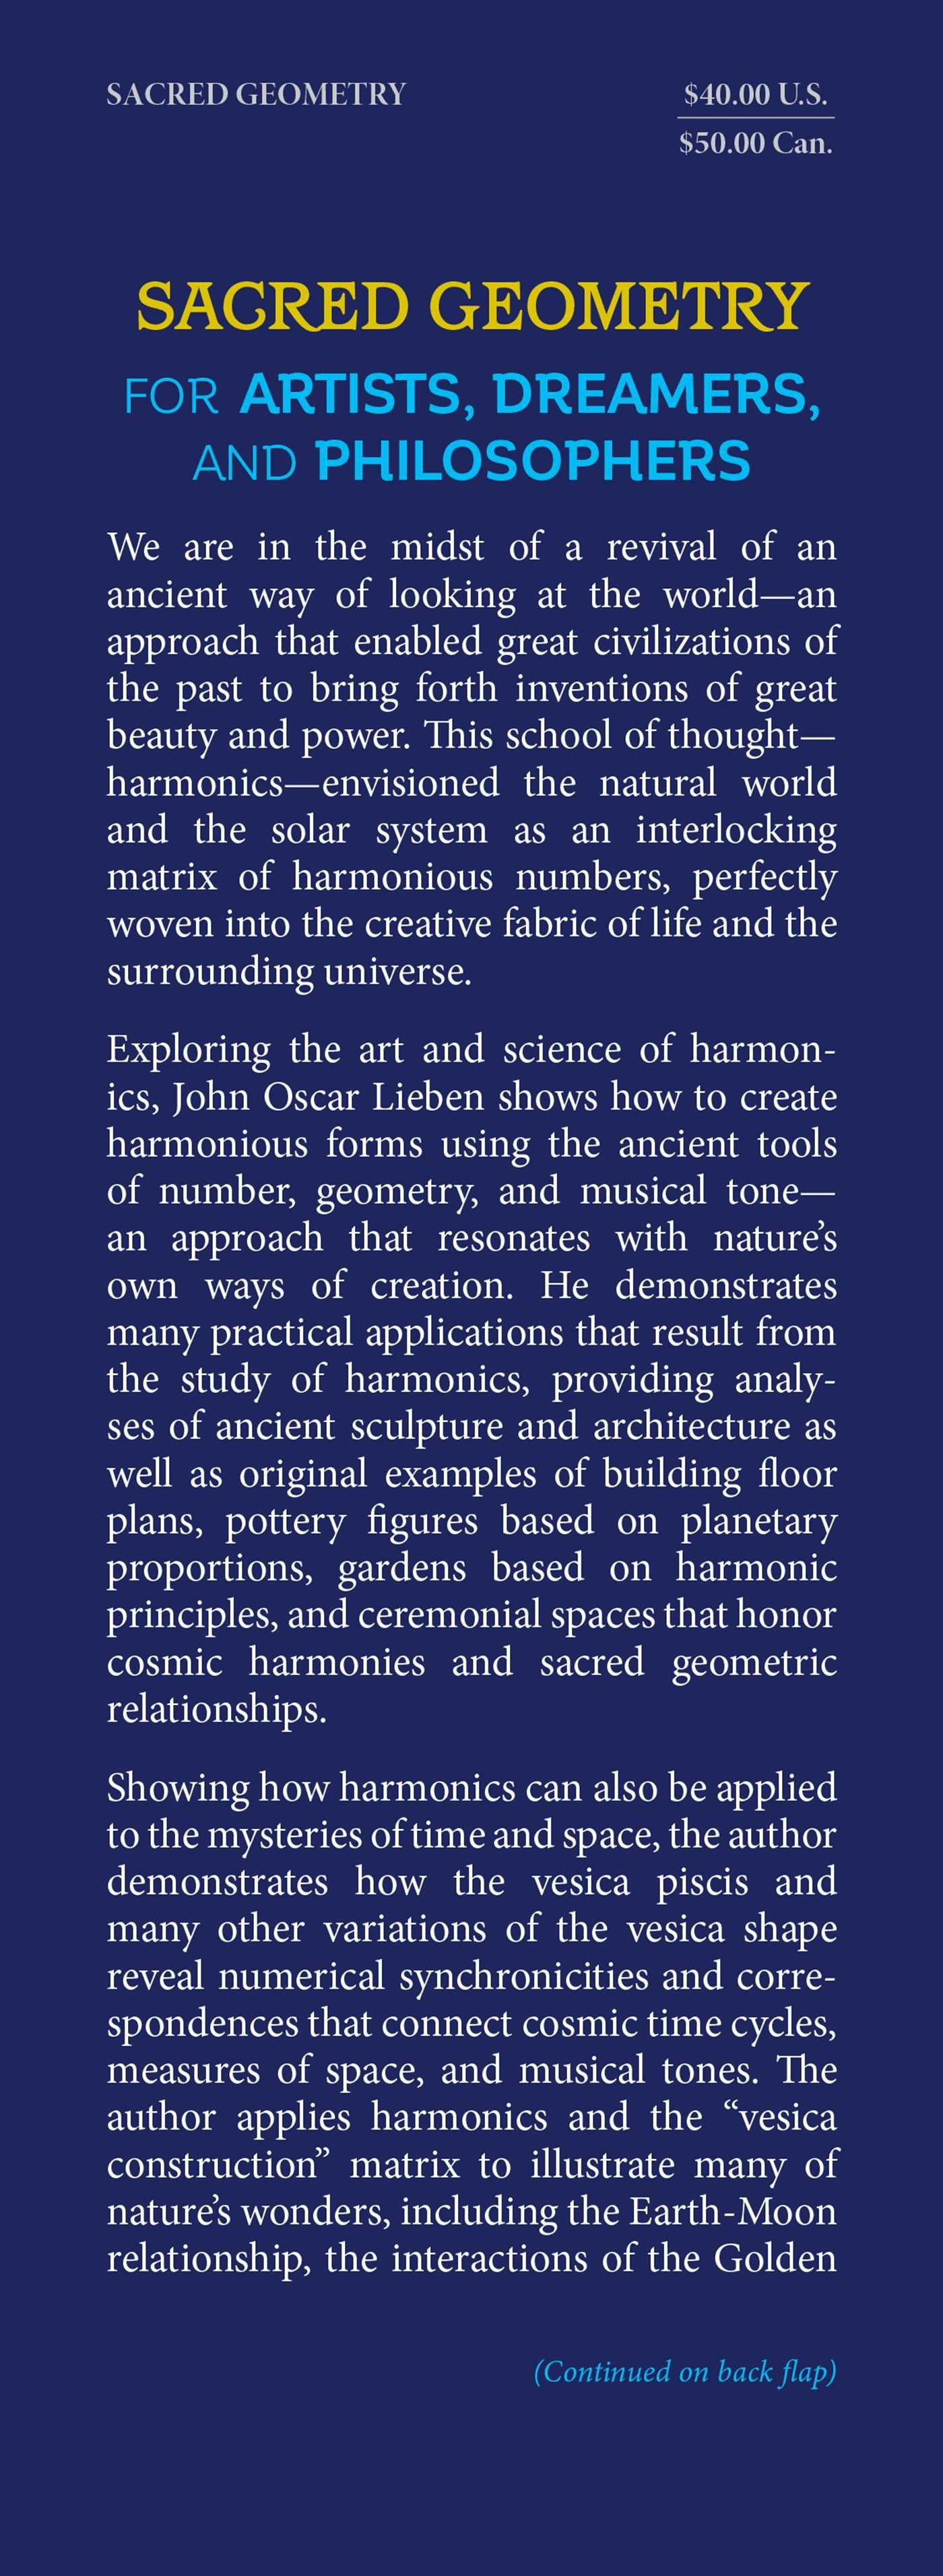 Sacred geometry for artists dreamers and philosophers 9781620557013.in01